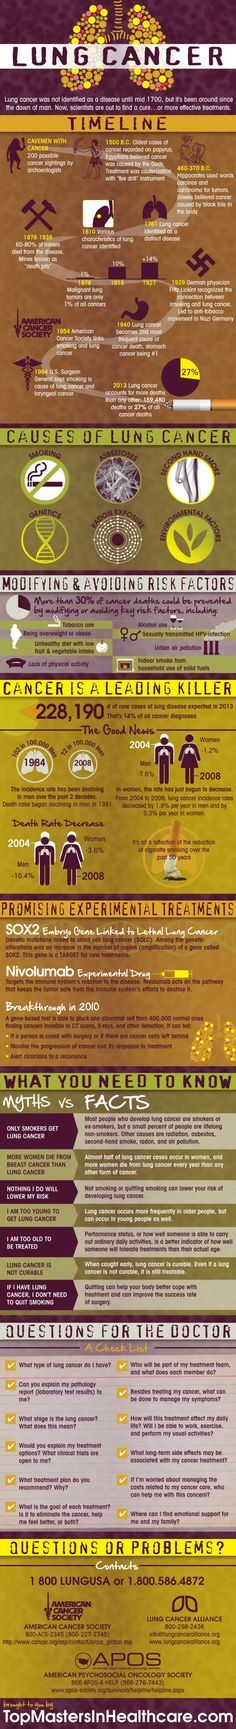 Lung Cancer [INFOGRAPHIC]